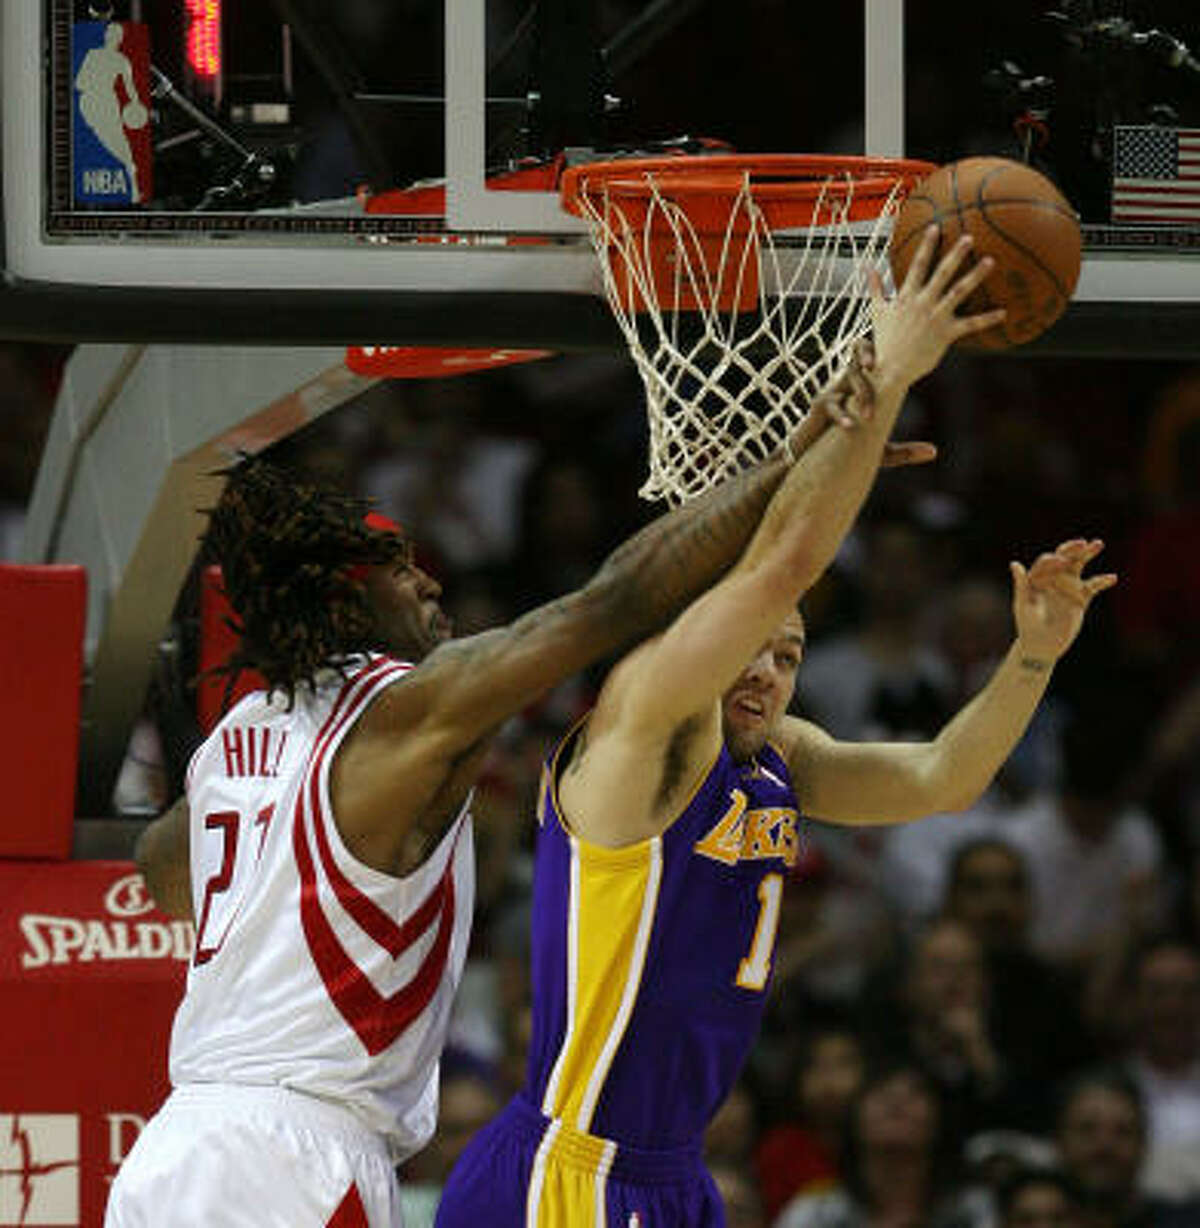 Los Angeles guard Jordan Farmar, right, is fouled by Rockets forward Jordan Hill as he goes to the rim in the second half.